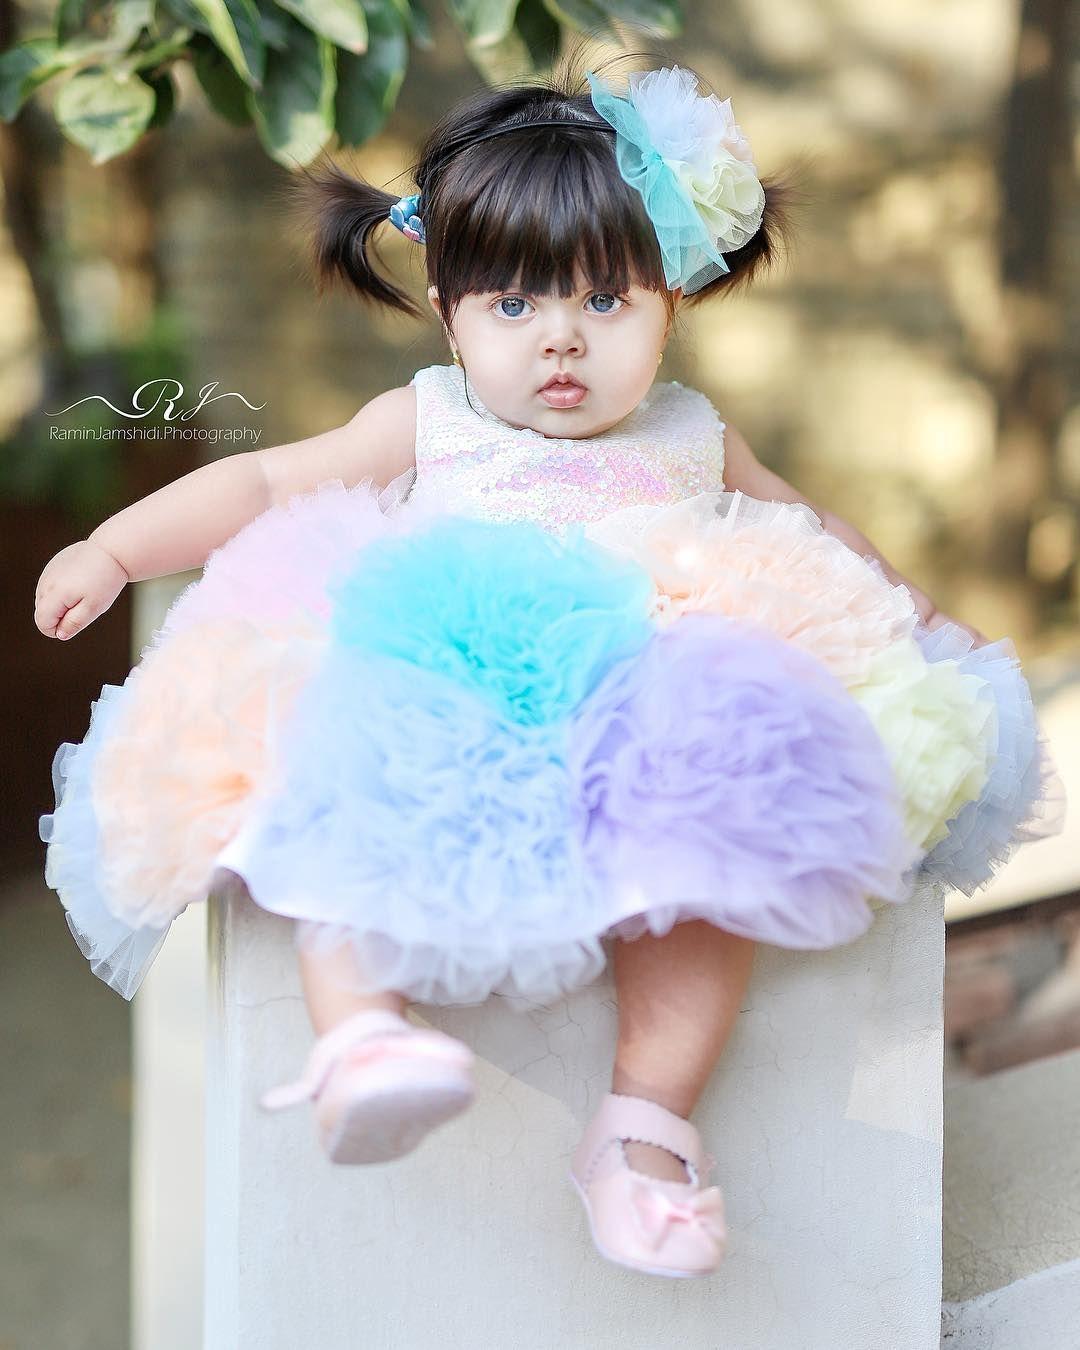 24 4k Likes 420 Comments Delvin Delvin 96 On Instagram عاشقتيم Hira Style Photo By R Cute Baby Twins Baby Girl Images Cute Baby Girl Wallpaper